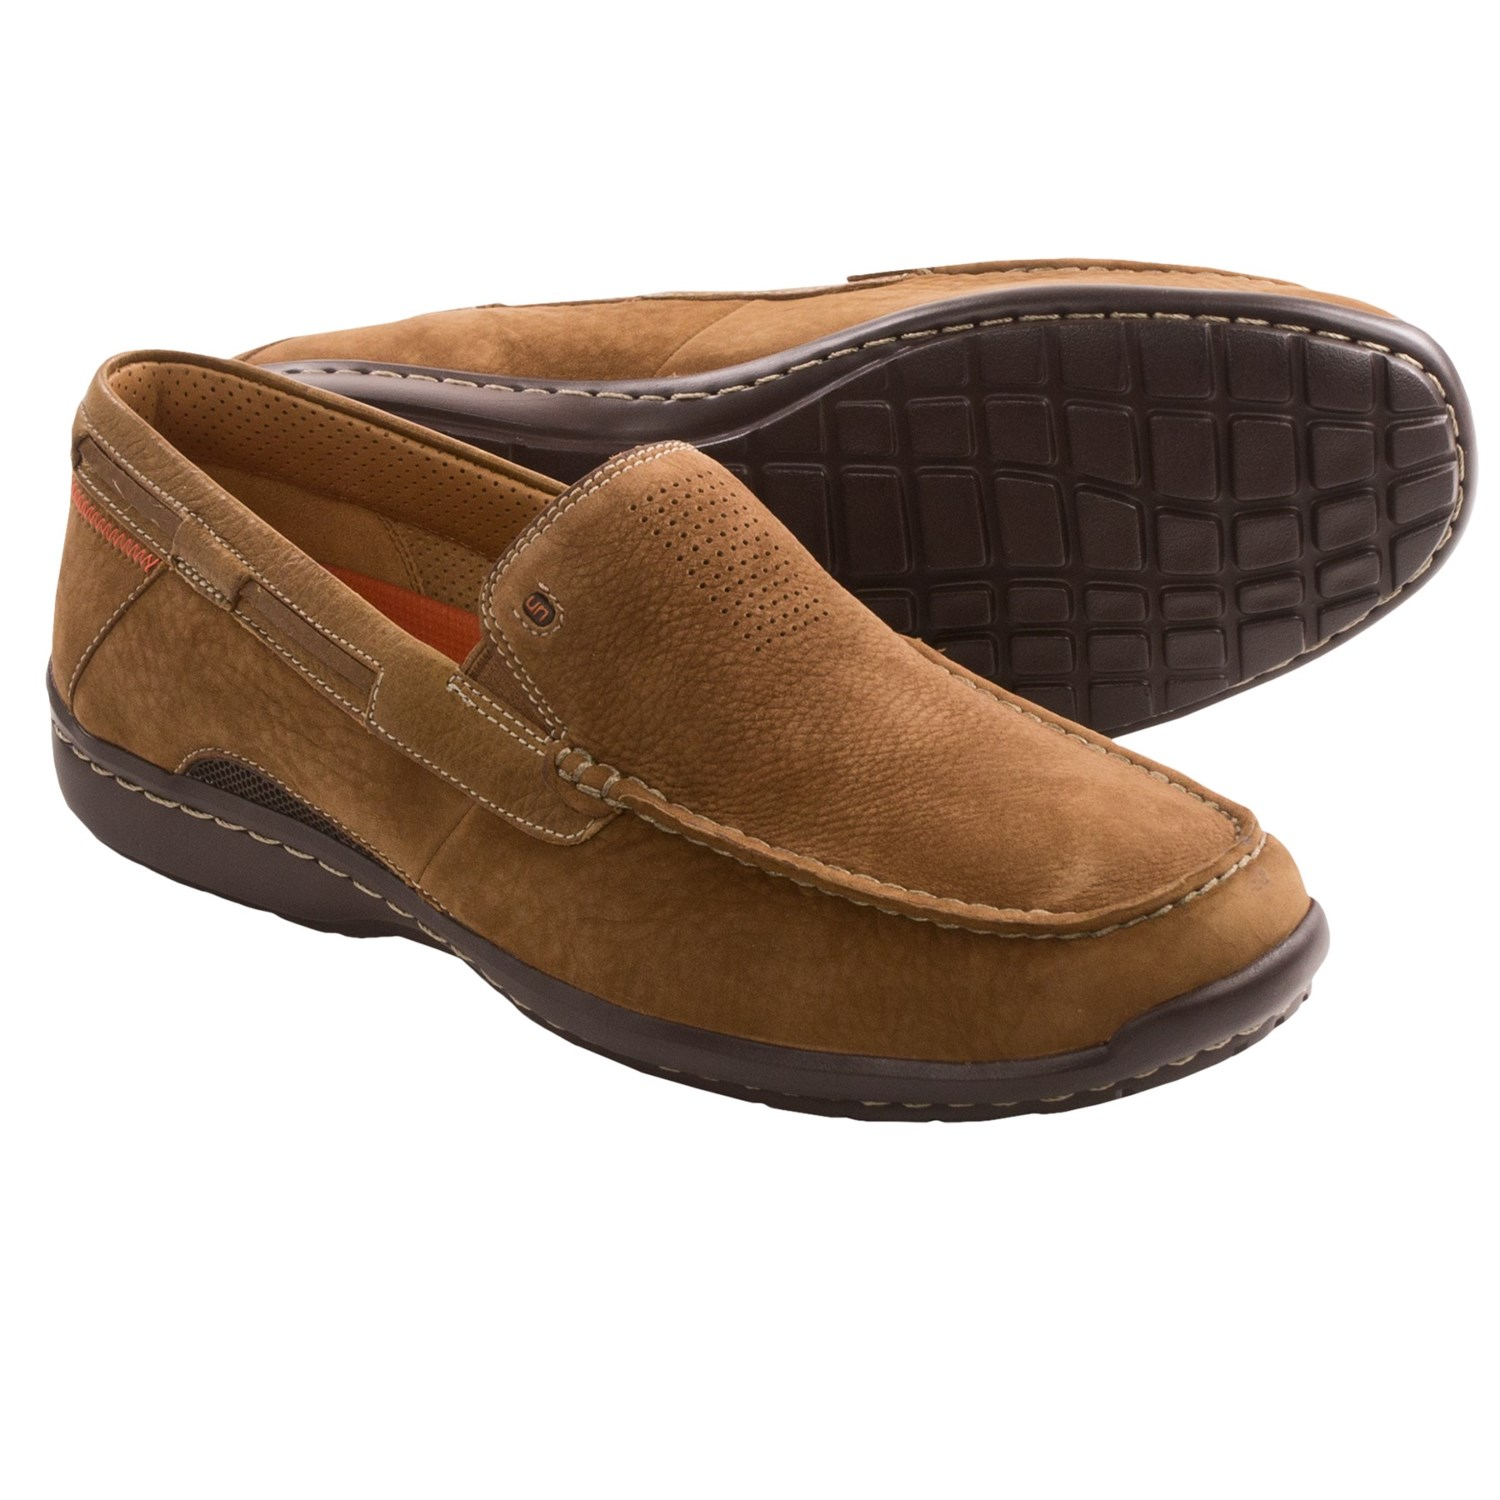 Clarks Mens Collection Slip On Shoes Tan